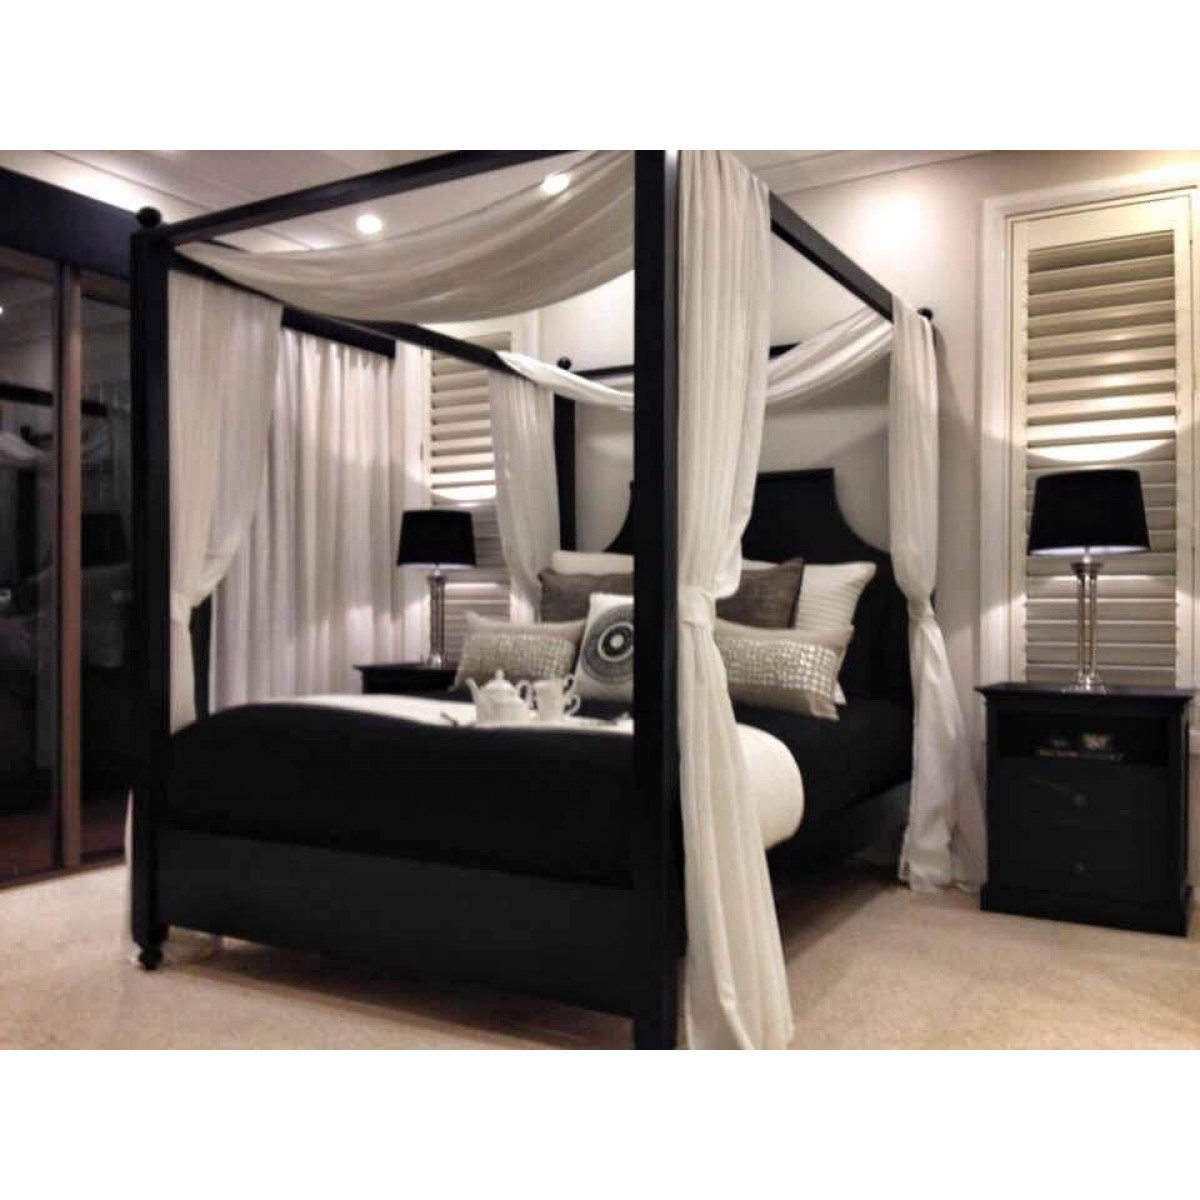 four poster bed 4 poster bed OIXQQMT